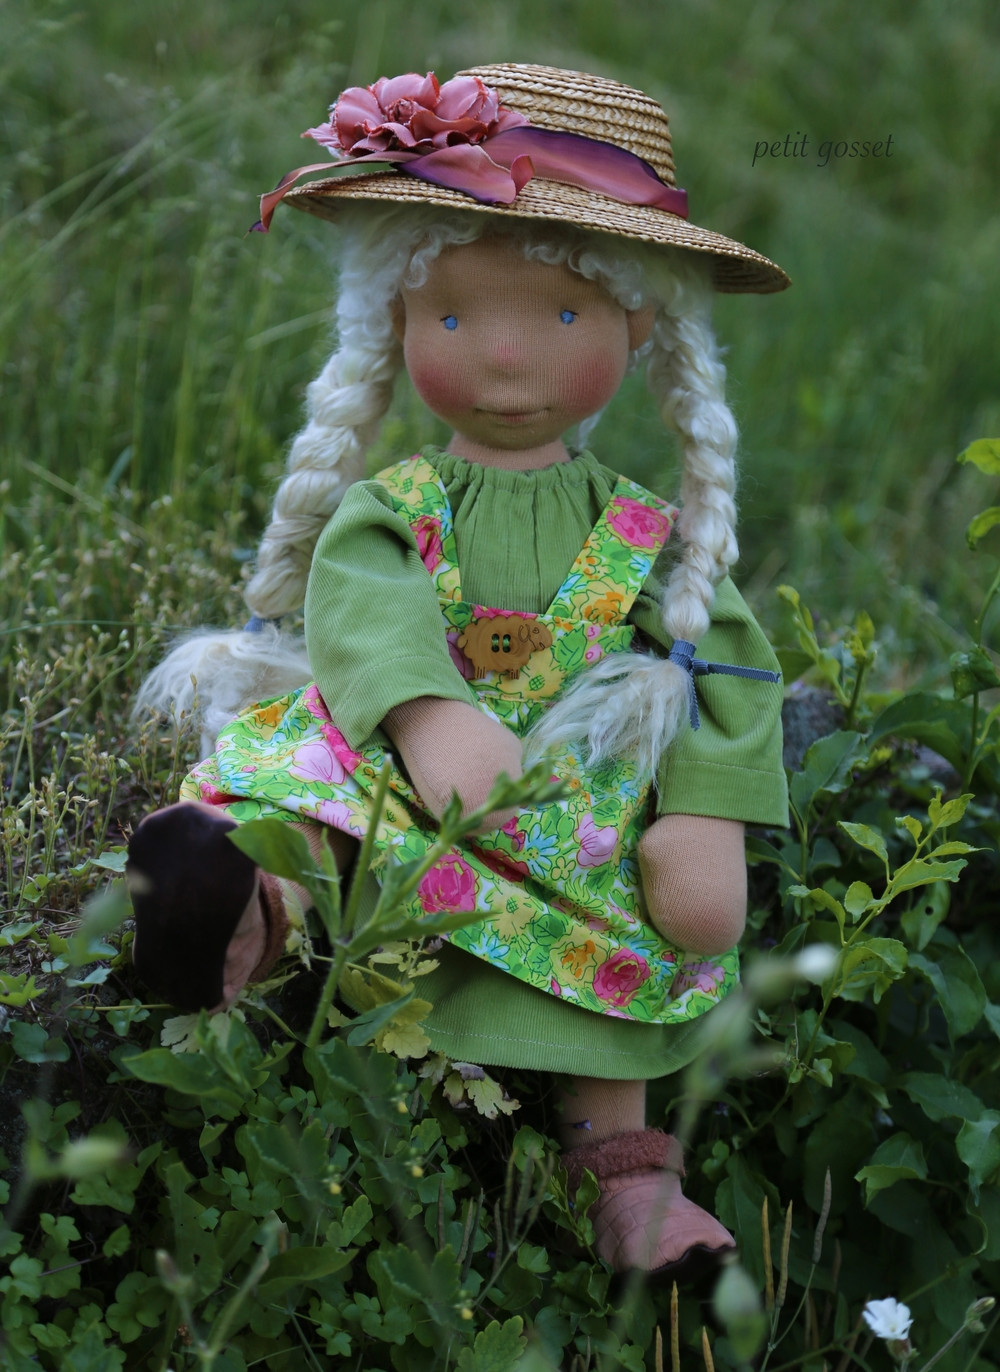 Marika, custom made doll, by petit gosset